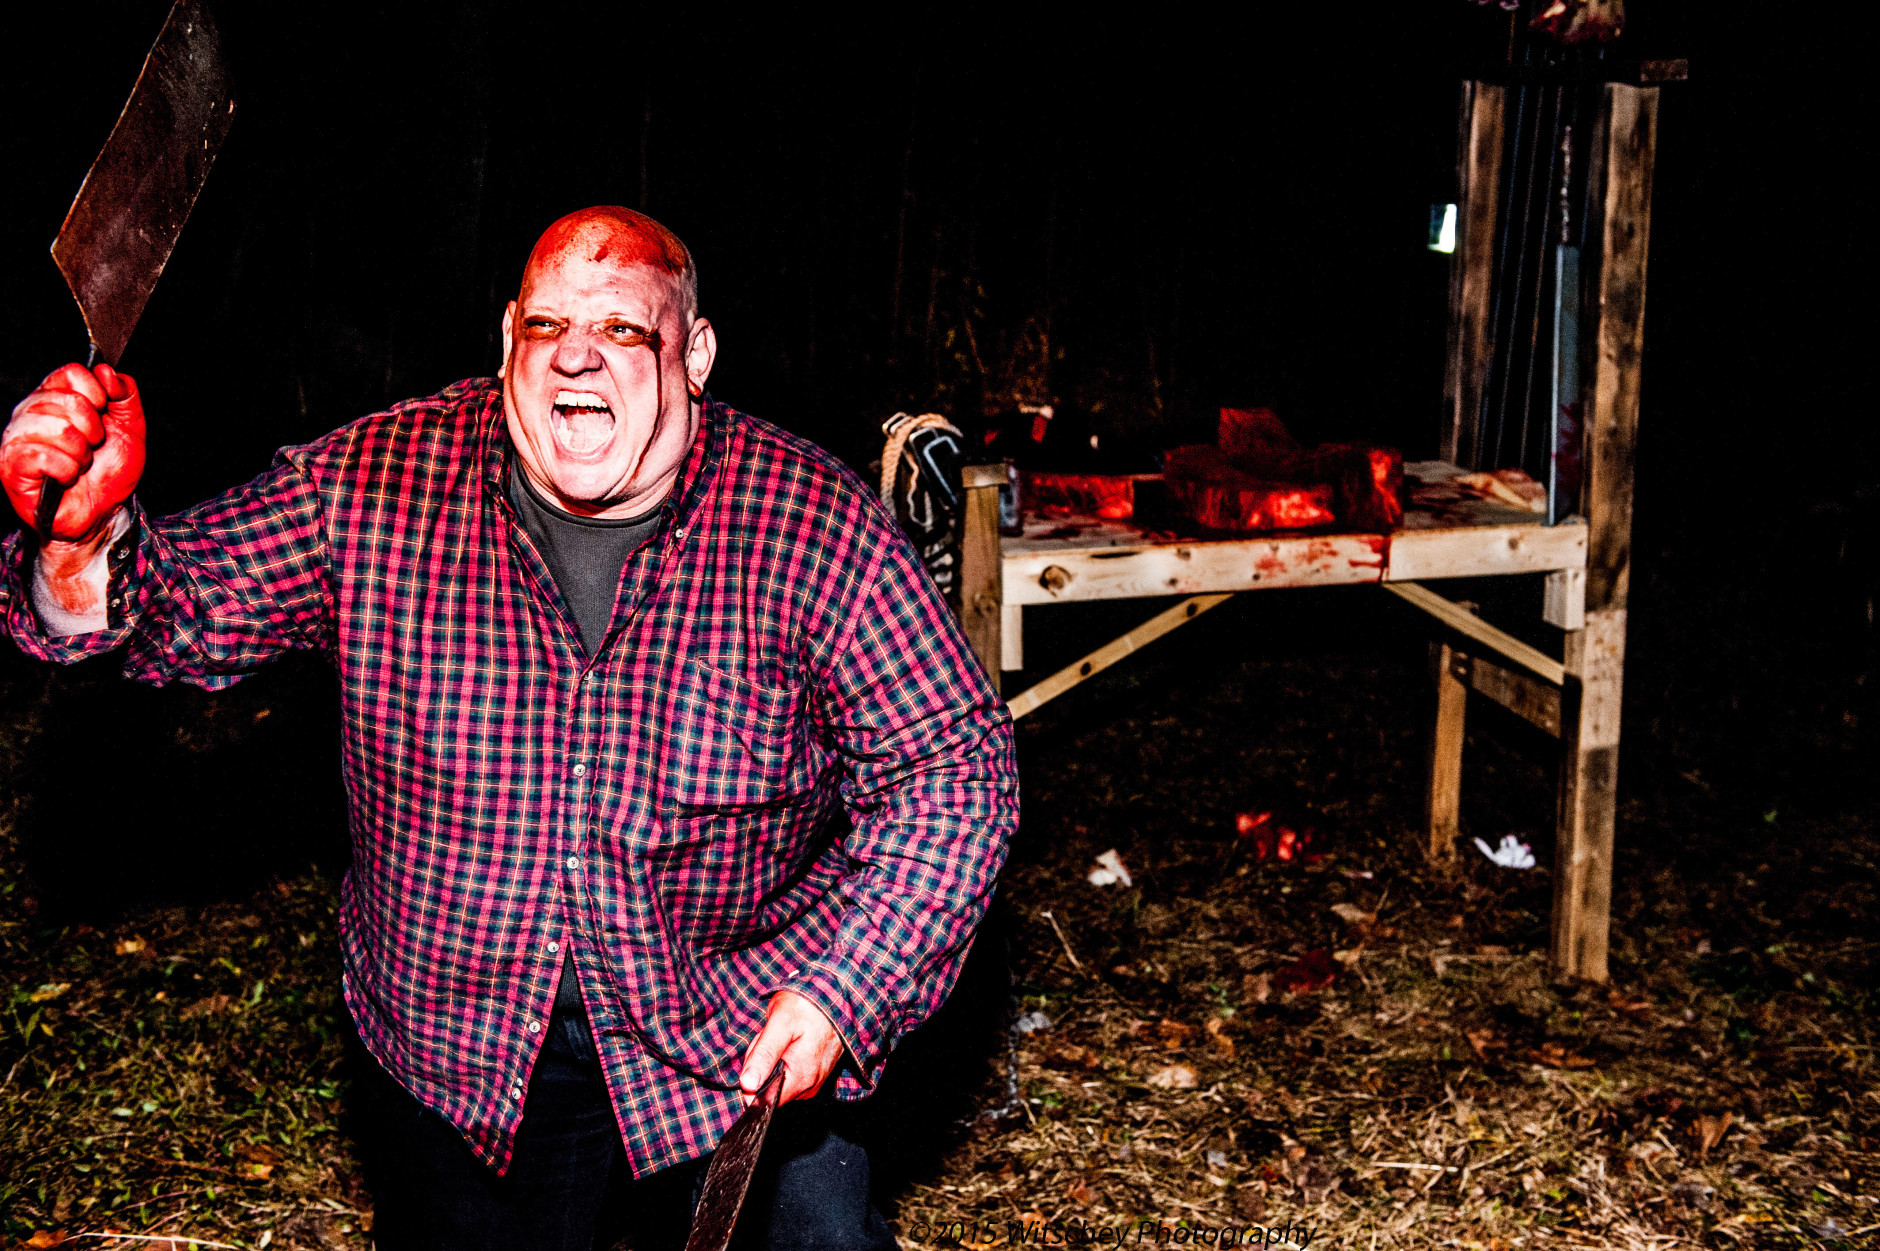 The Clifton Haunted Trail has been a town tradition since 2001, and over the years it's grown from a small path lit by flashlights, to a production that involves 15 generators, more than 200 volunteers, 24 skits and months of advanced planning and preparation.  (Courtesy Witschey Photography)